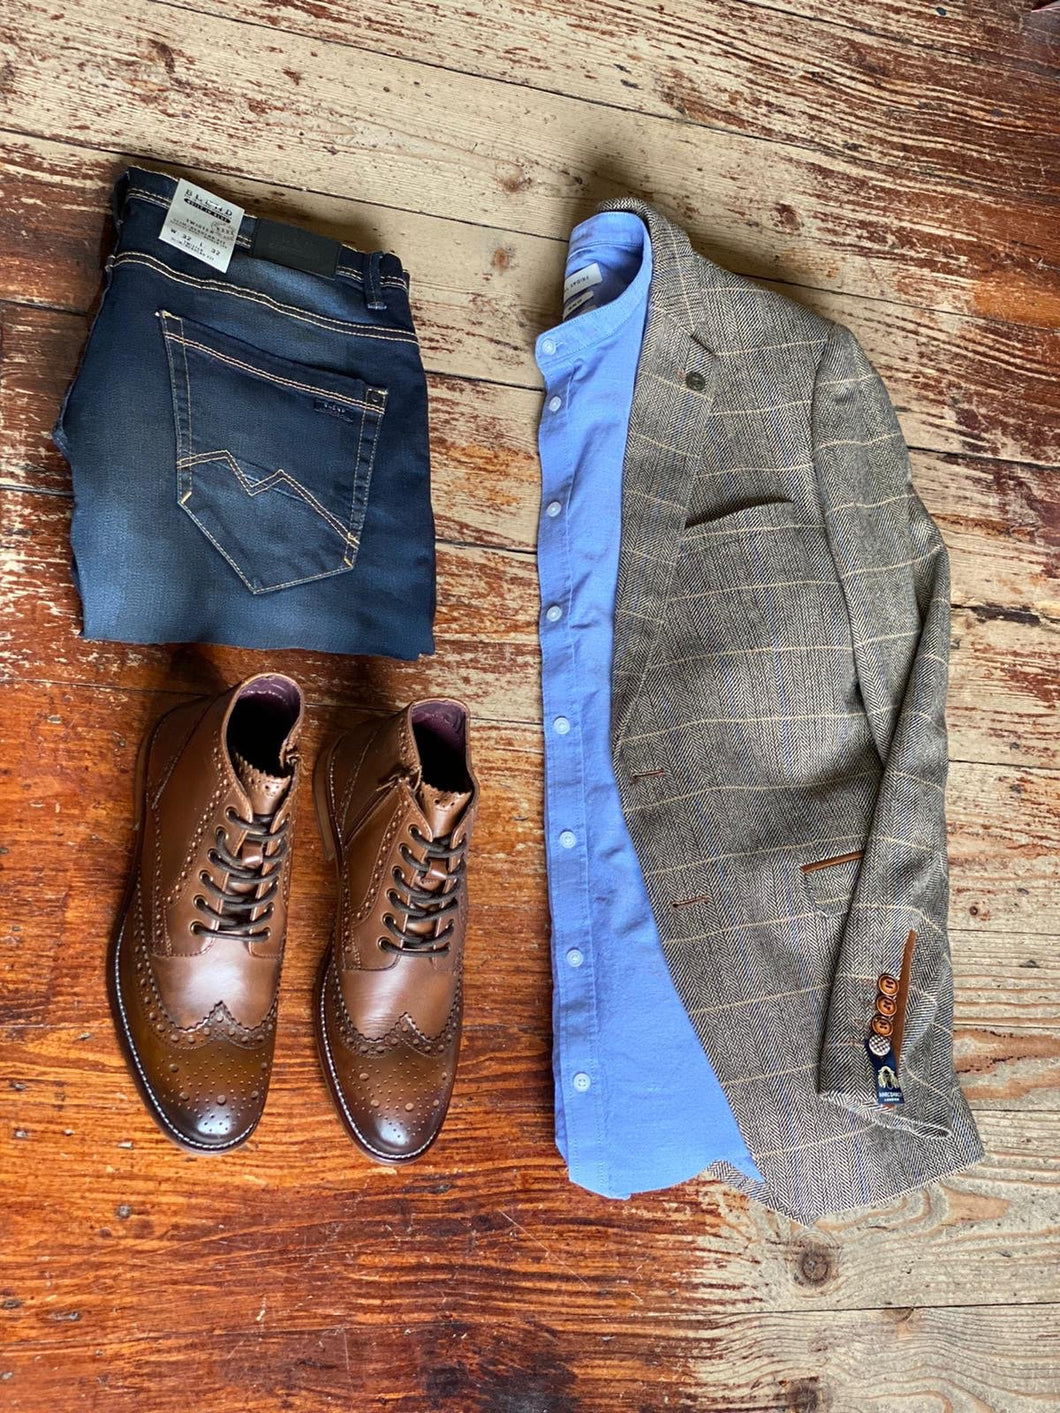 Ted & Jeans Casual Look marc-darcy-ted-tweed-herringbone-check-suit-blazer-tan / casual-friday-cotton-sky-blue-grandad-shirt / blend-dark-wash-jeans